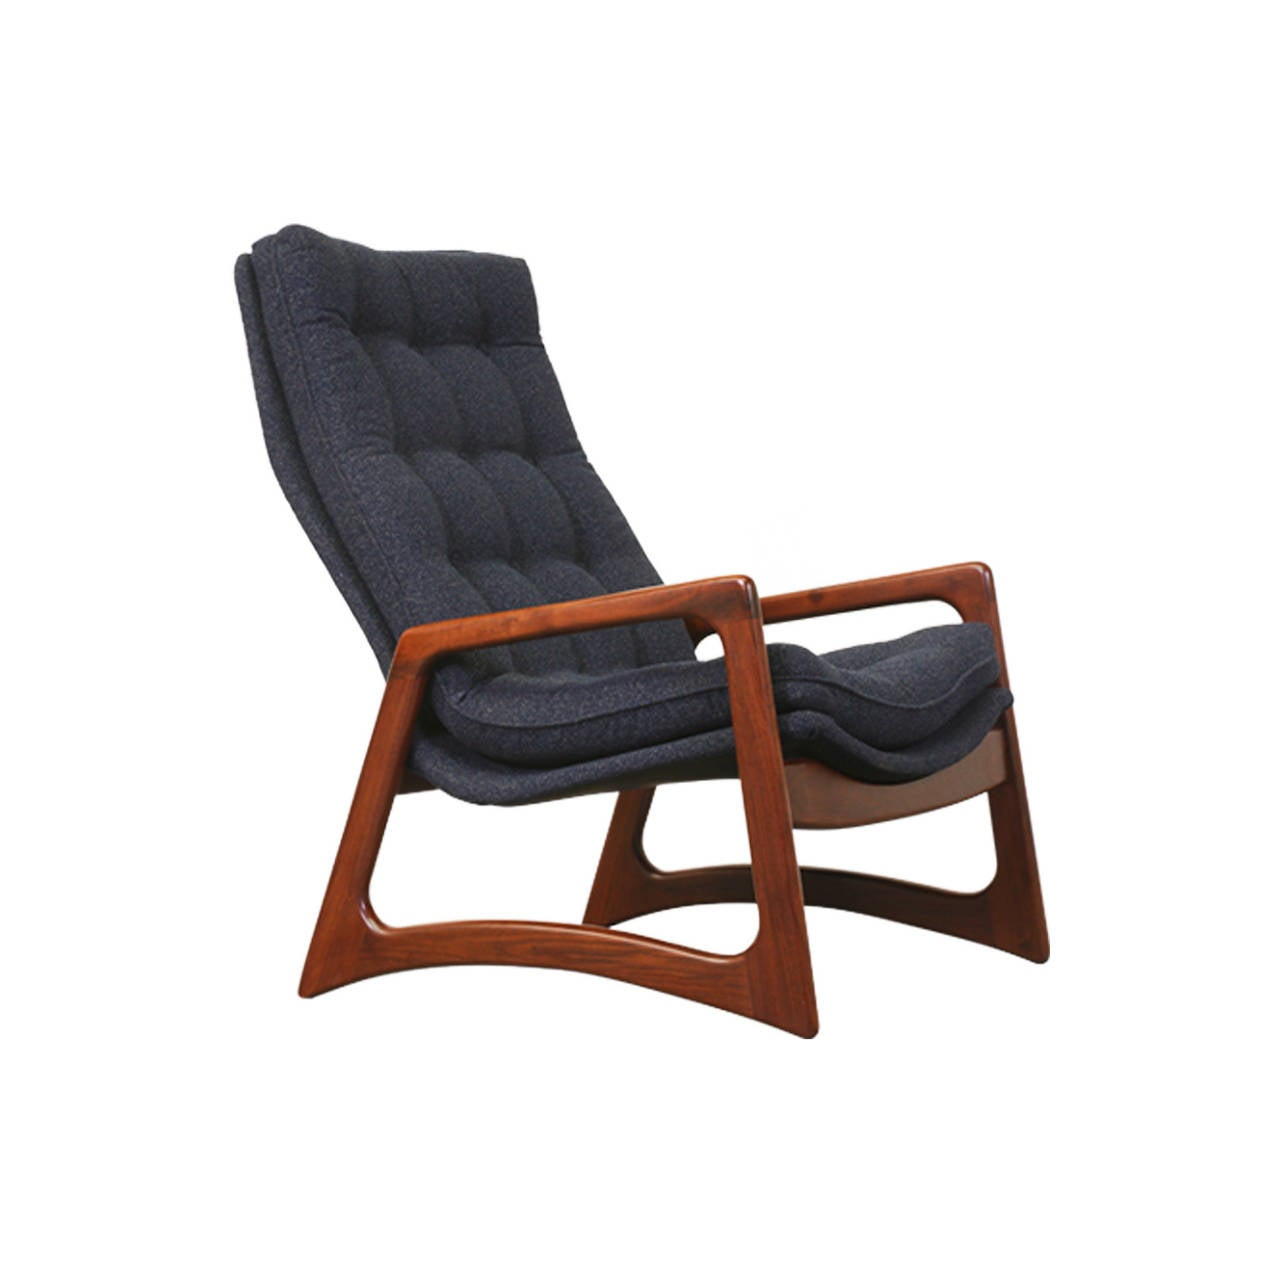 Adrian Pearsall High Back Tufted Lounge Chair for Craft Associates at 1stdibs